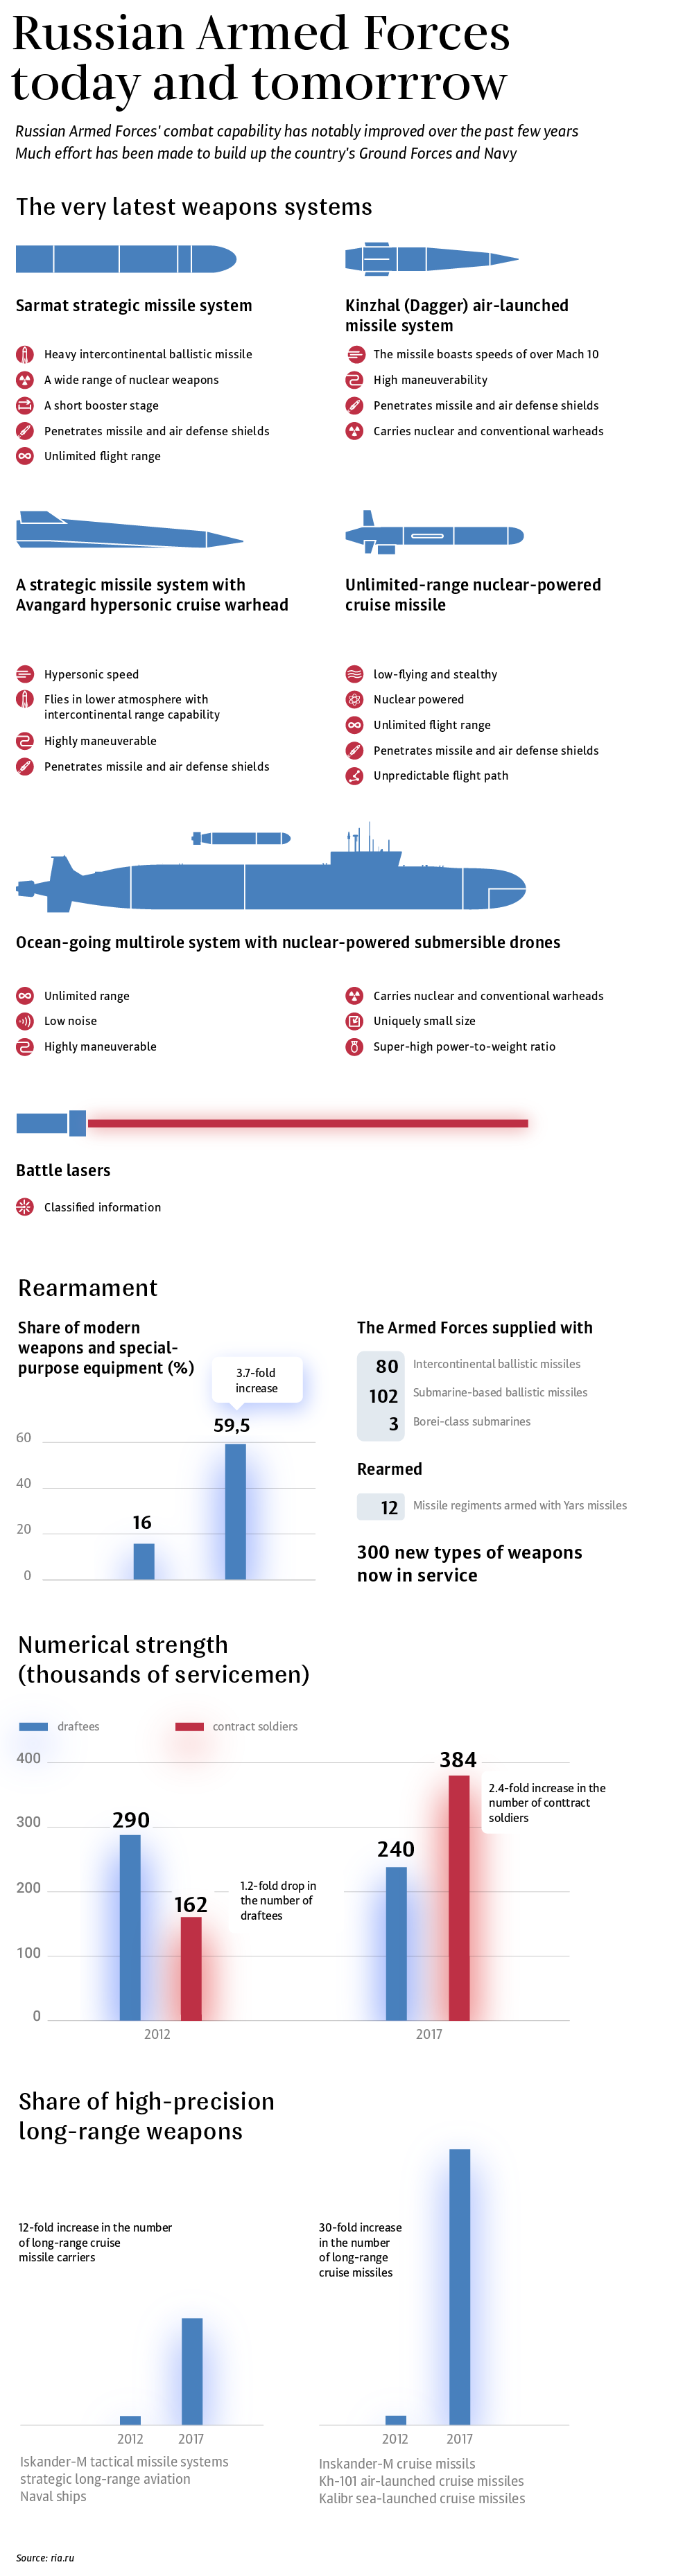 Improvement of the Russian Armed Forces